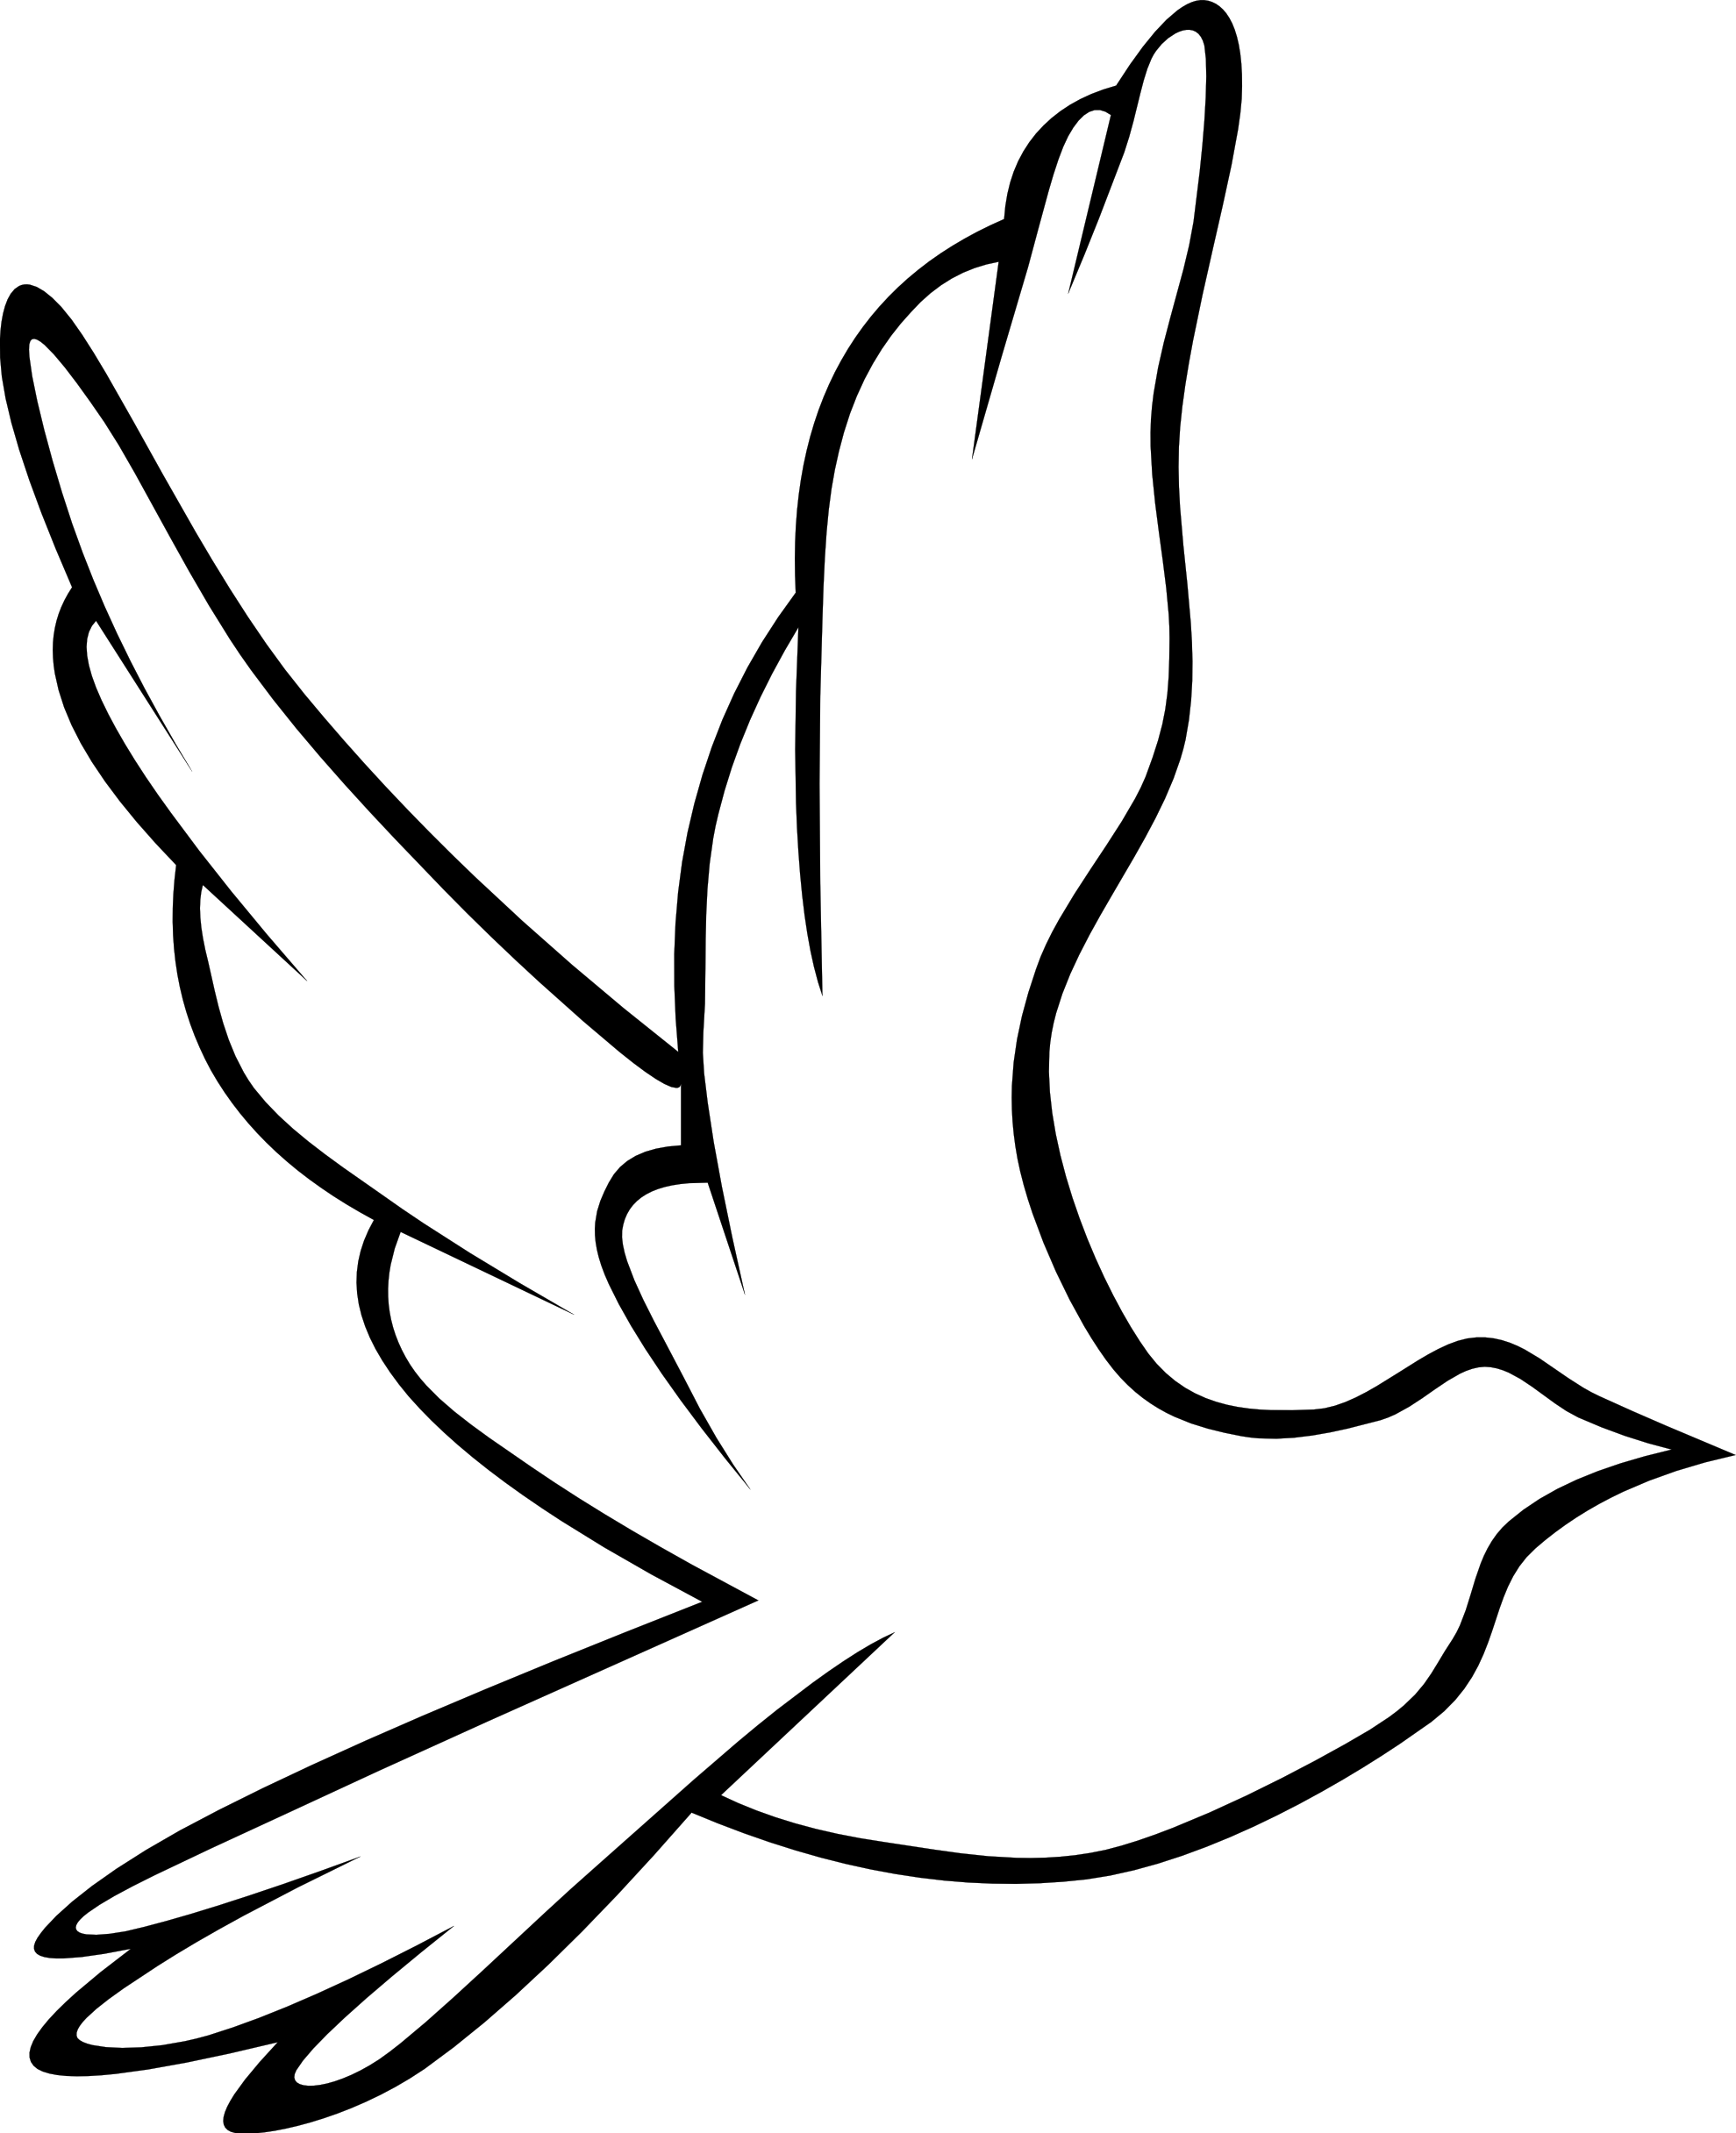 Social drawing bird. Clip art peace dove